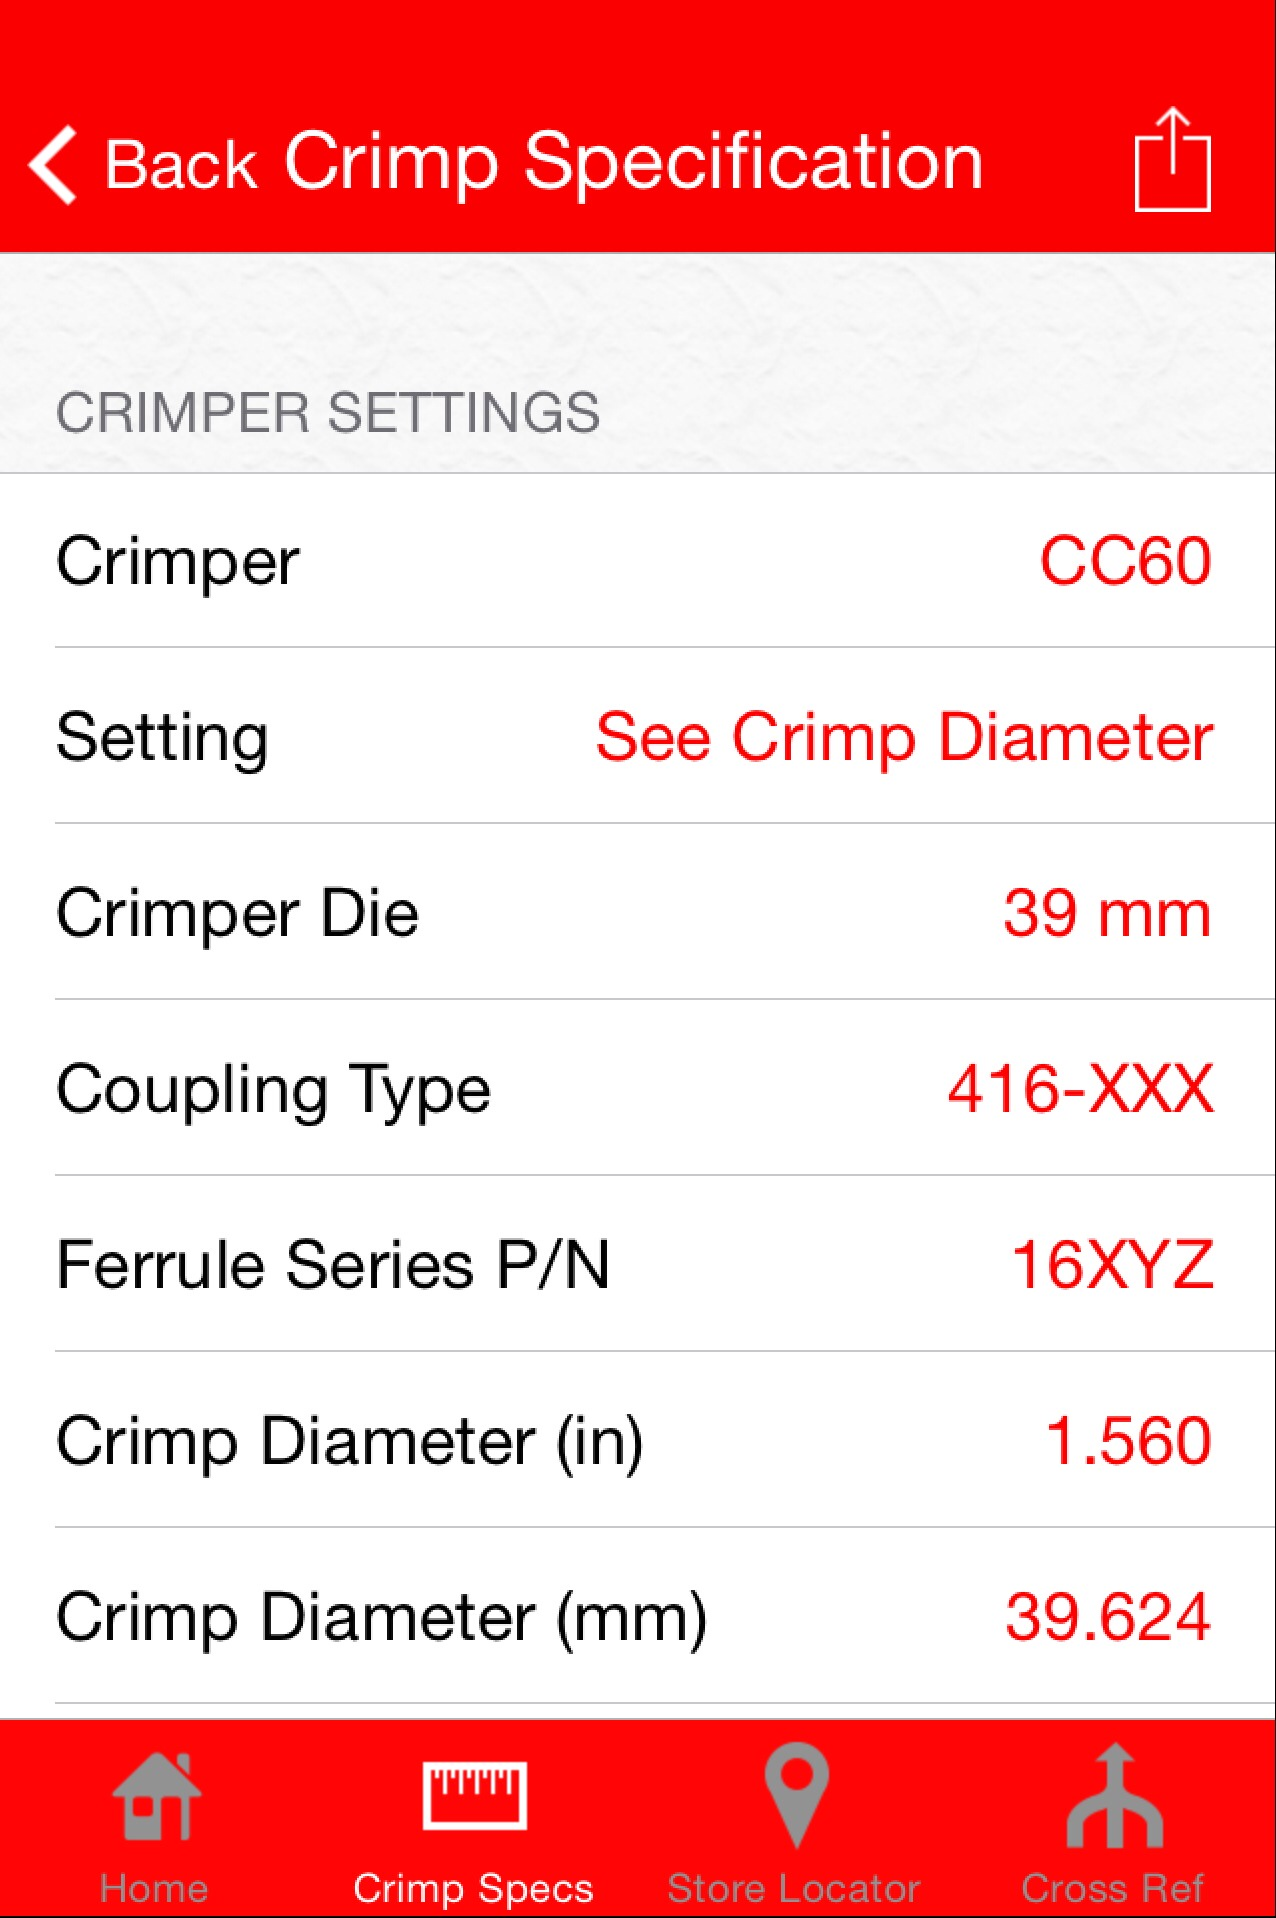 App Crimp Detail Screen